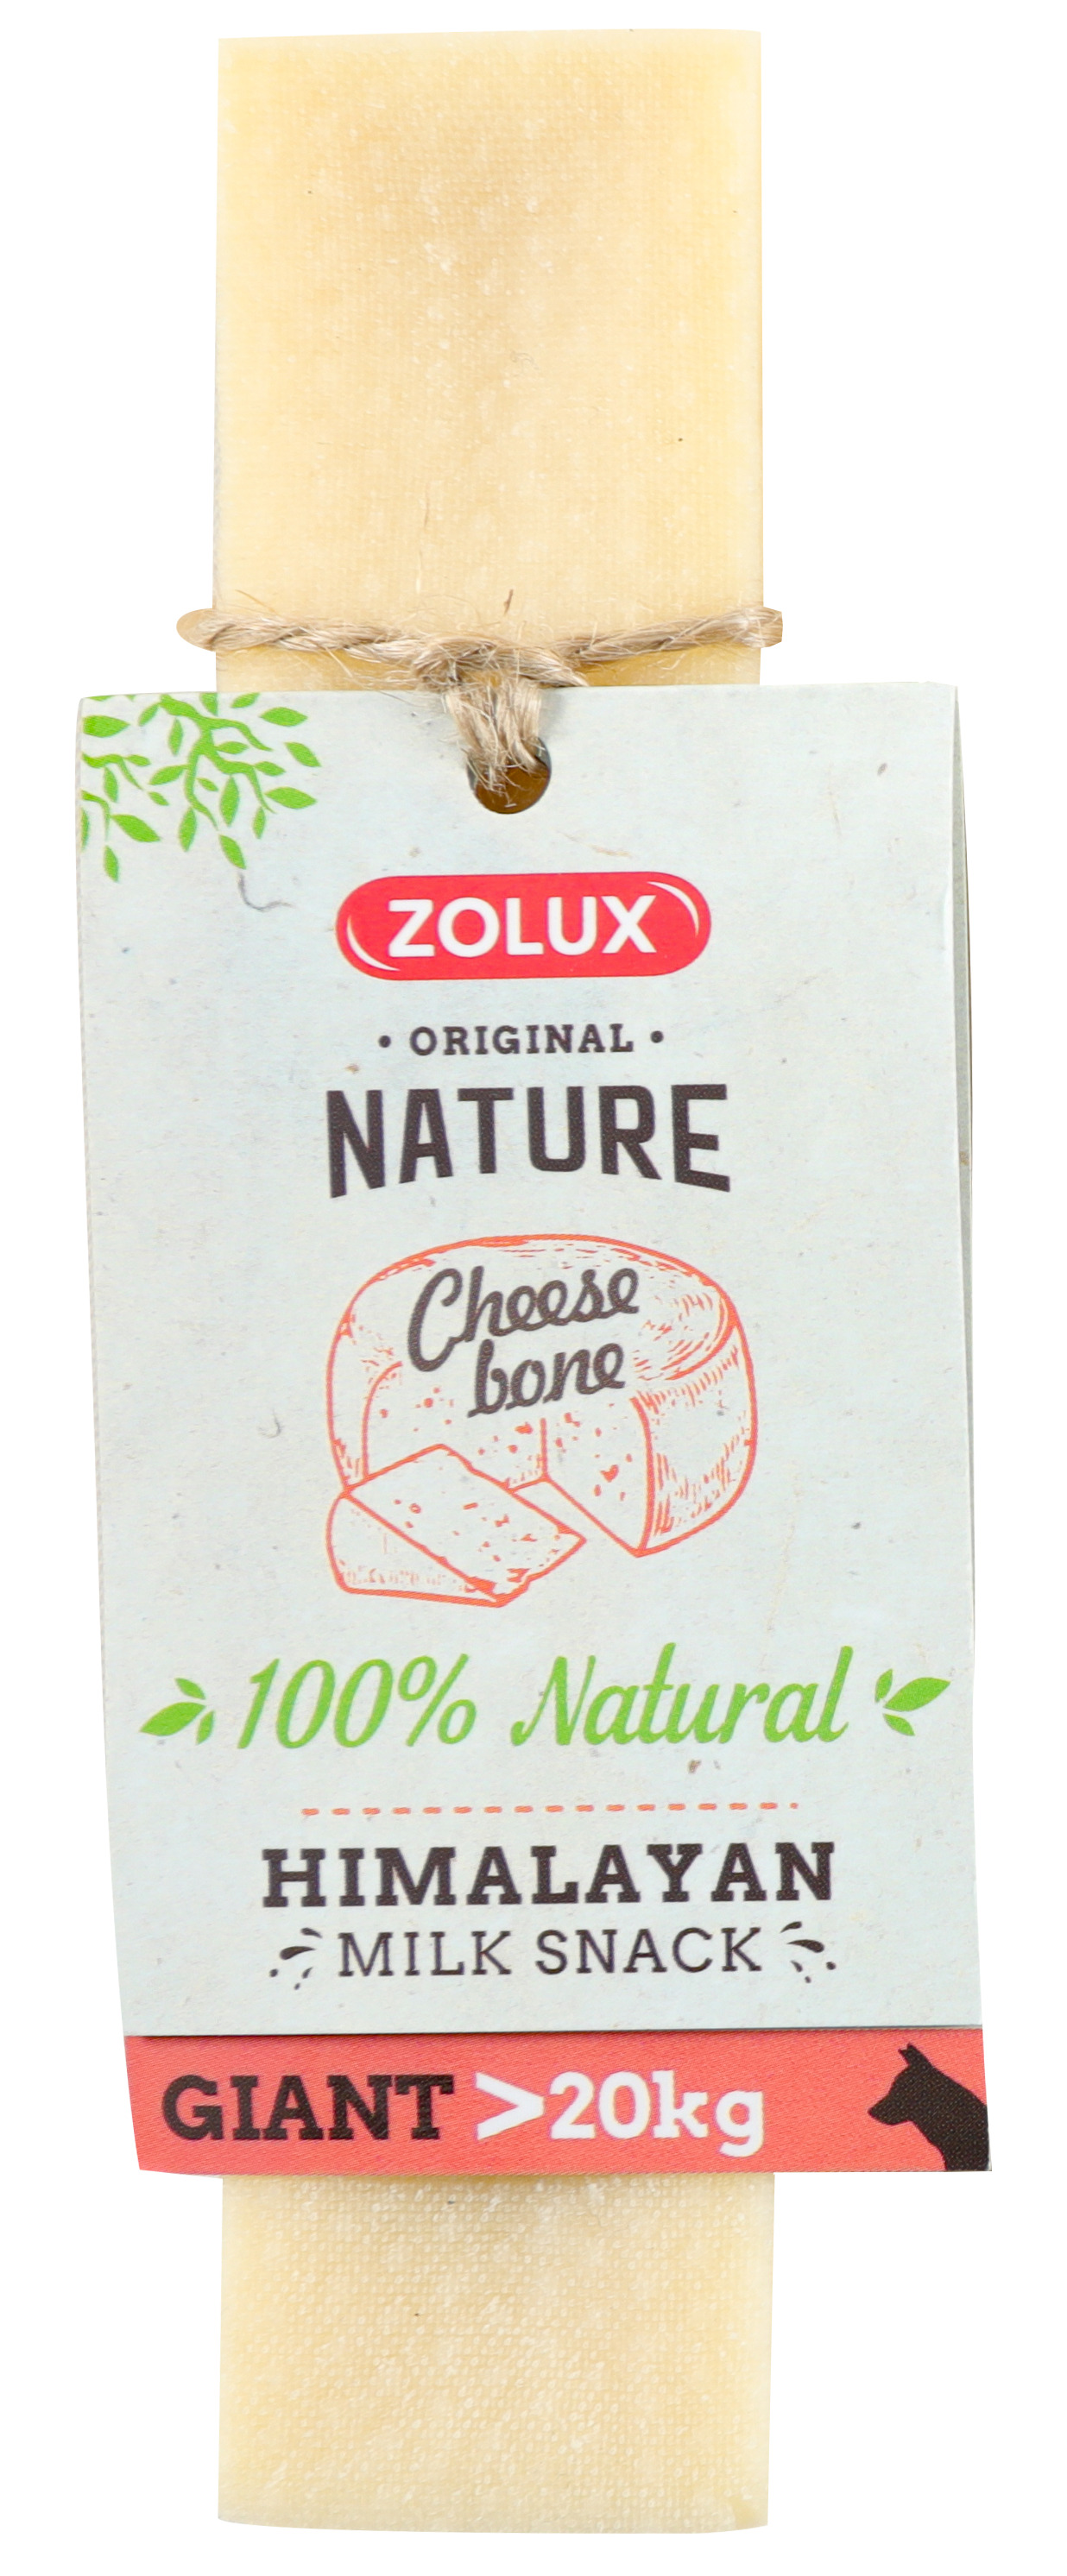 Friandise chien - Zolux cheese bone Taille Giant